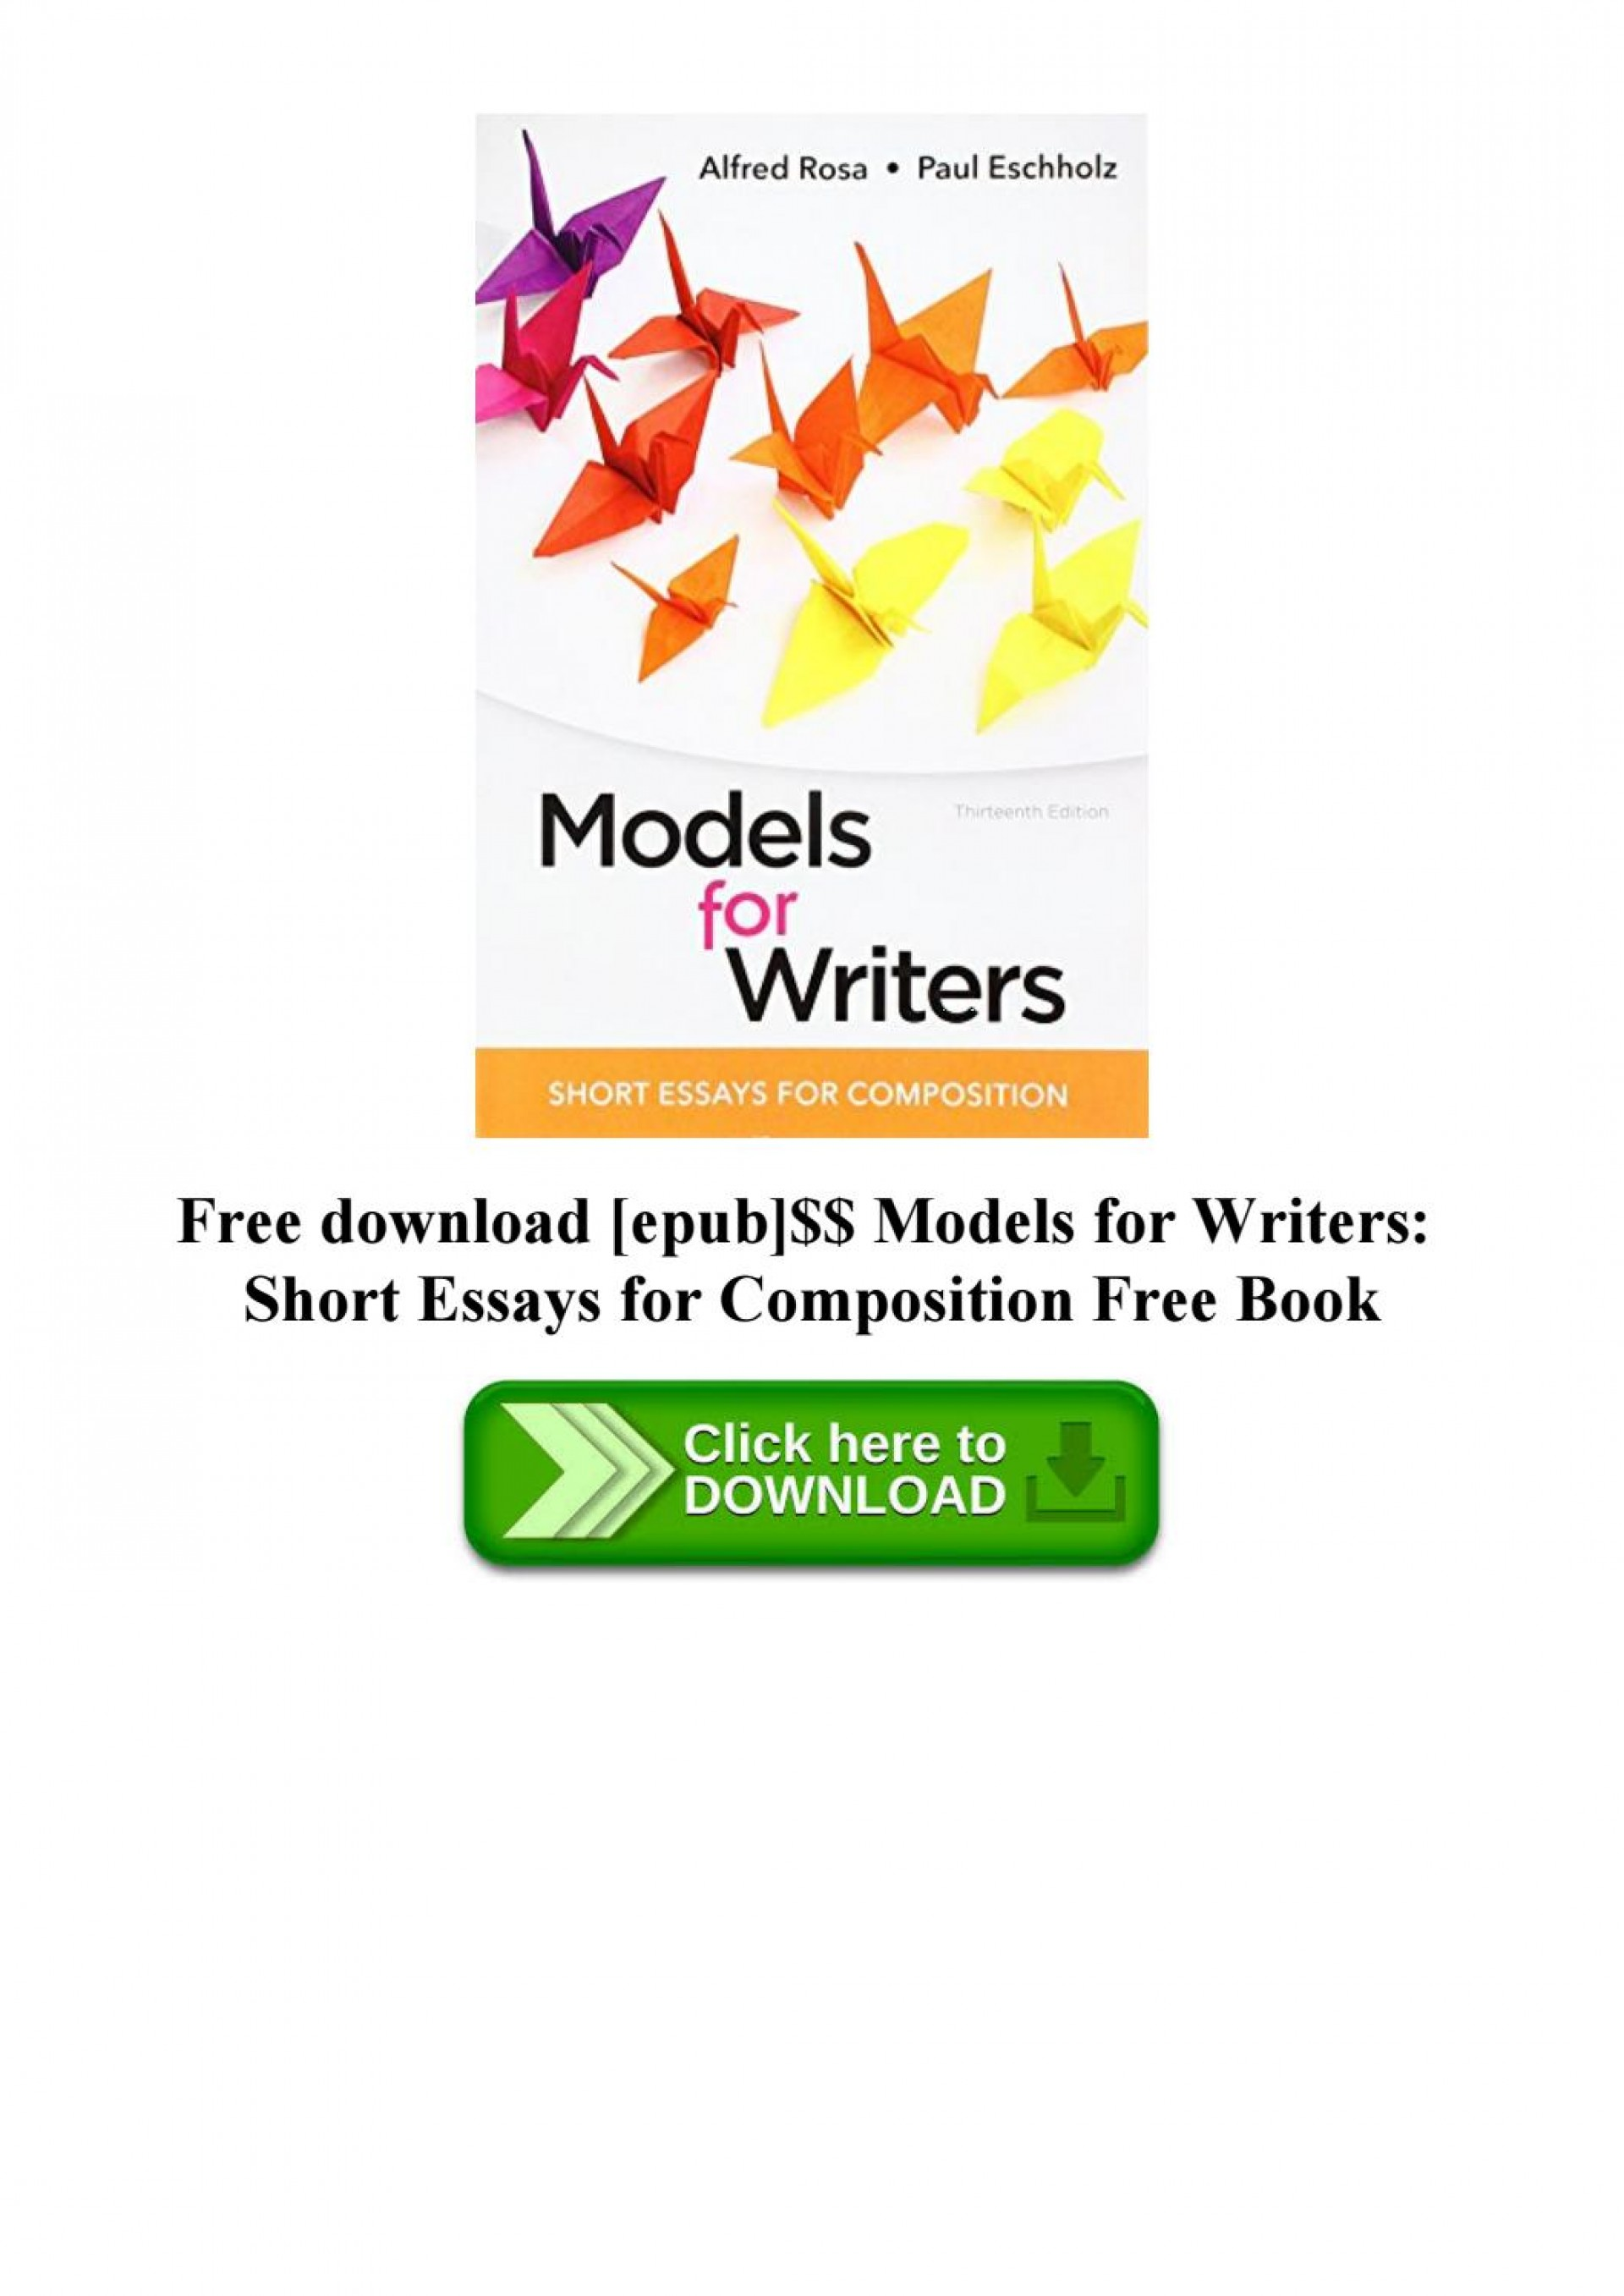 017 Page 1 Essay Example Models For Writers Short Essays Singular Composition 12th Edition Pdf 13th 1920